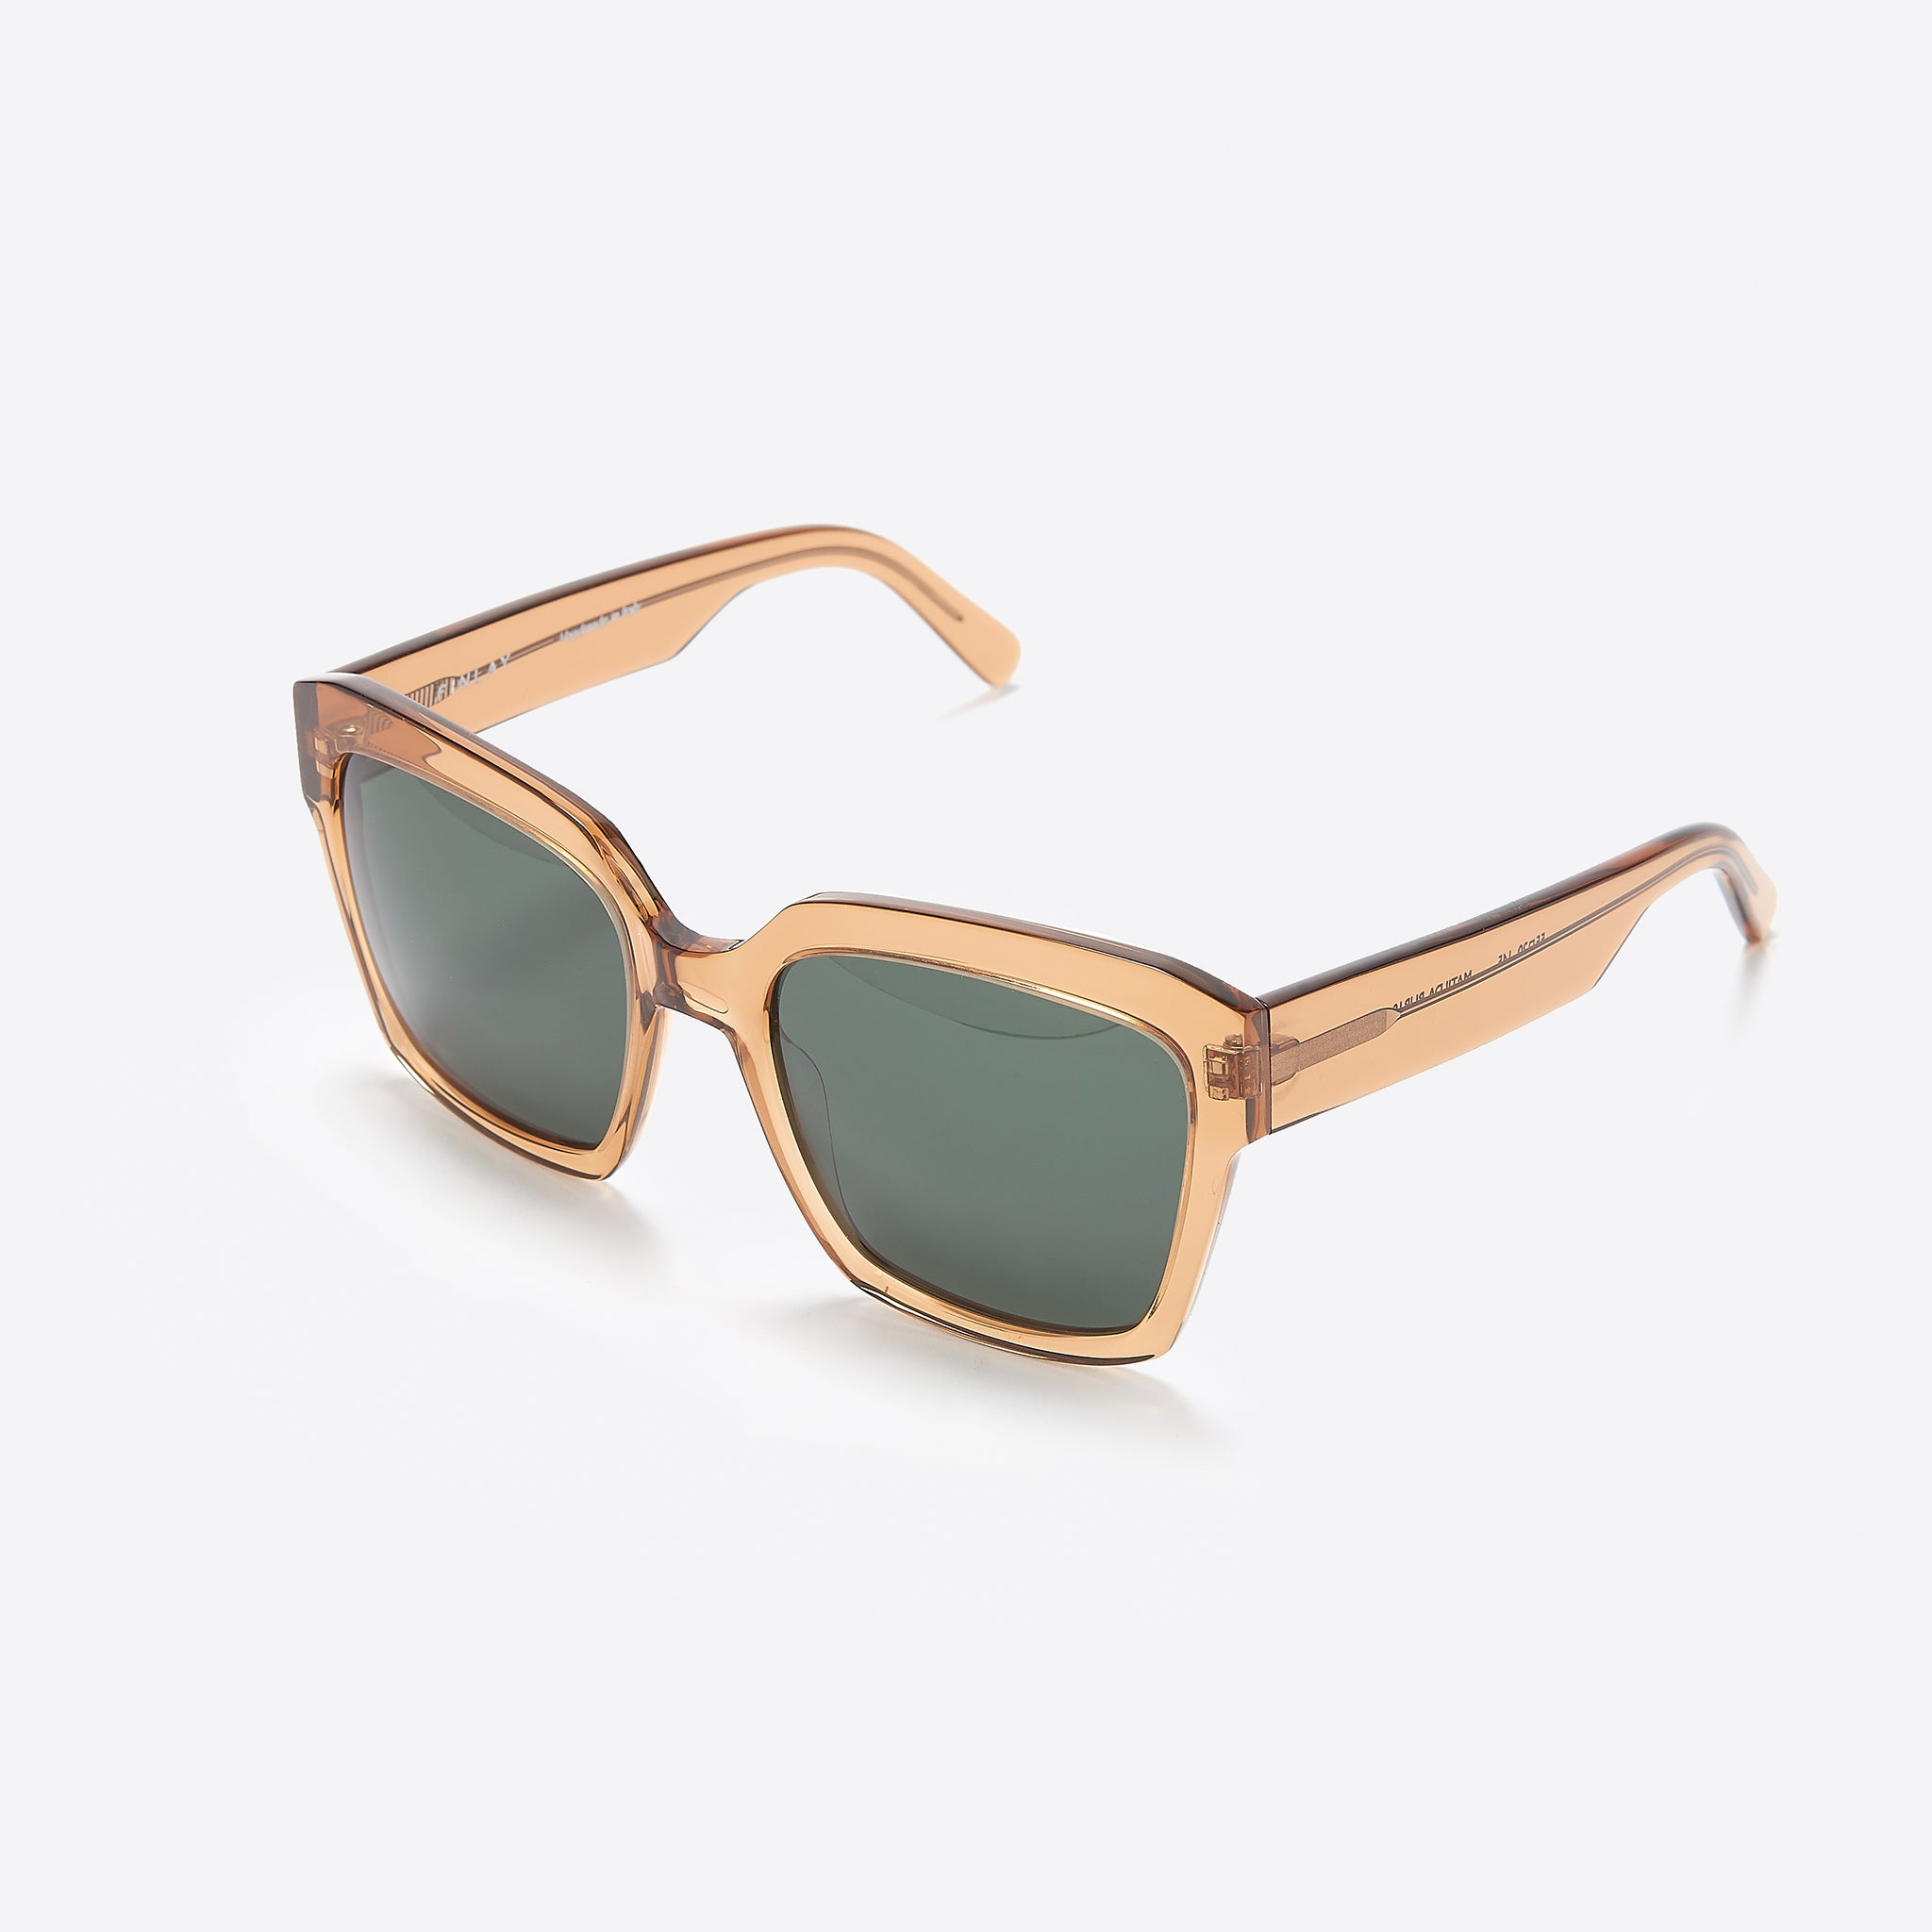 FINLAY London Matilda in Butterscotch with Green Lenses